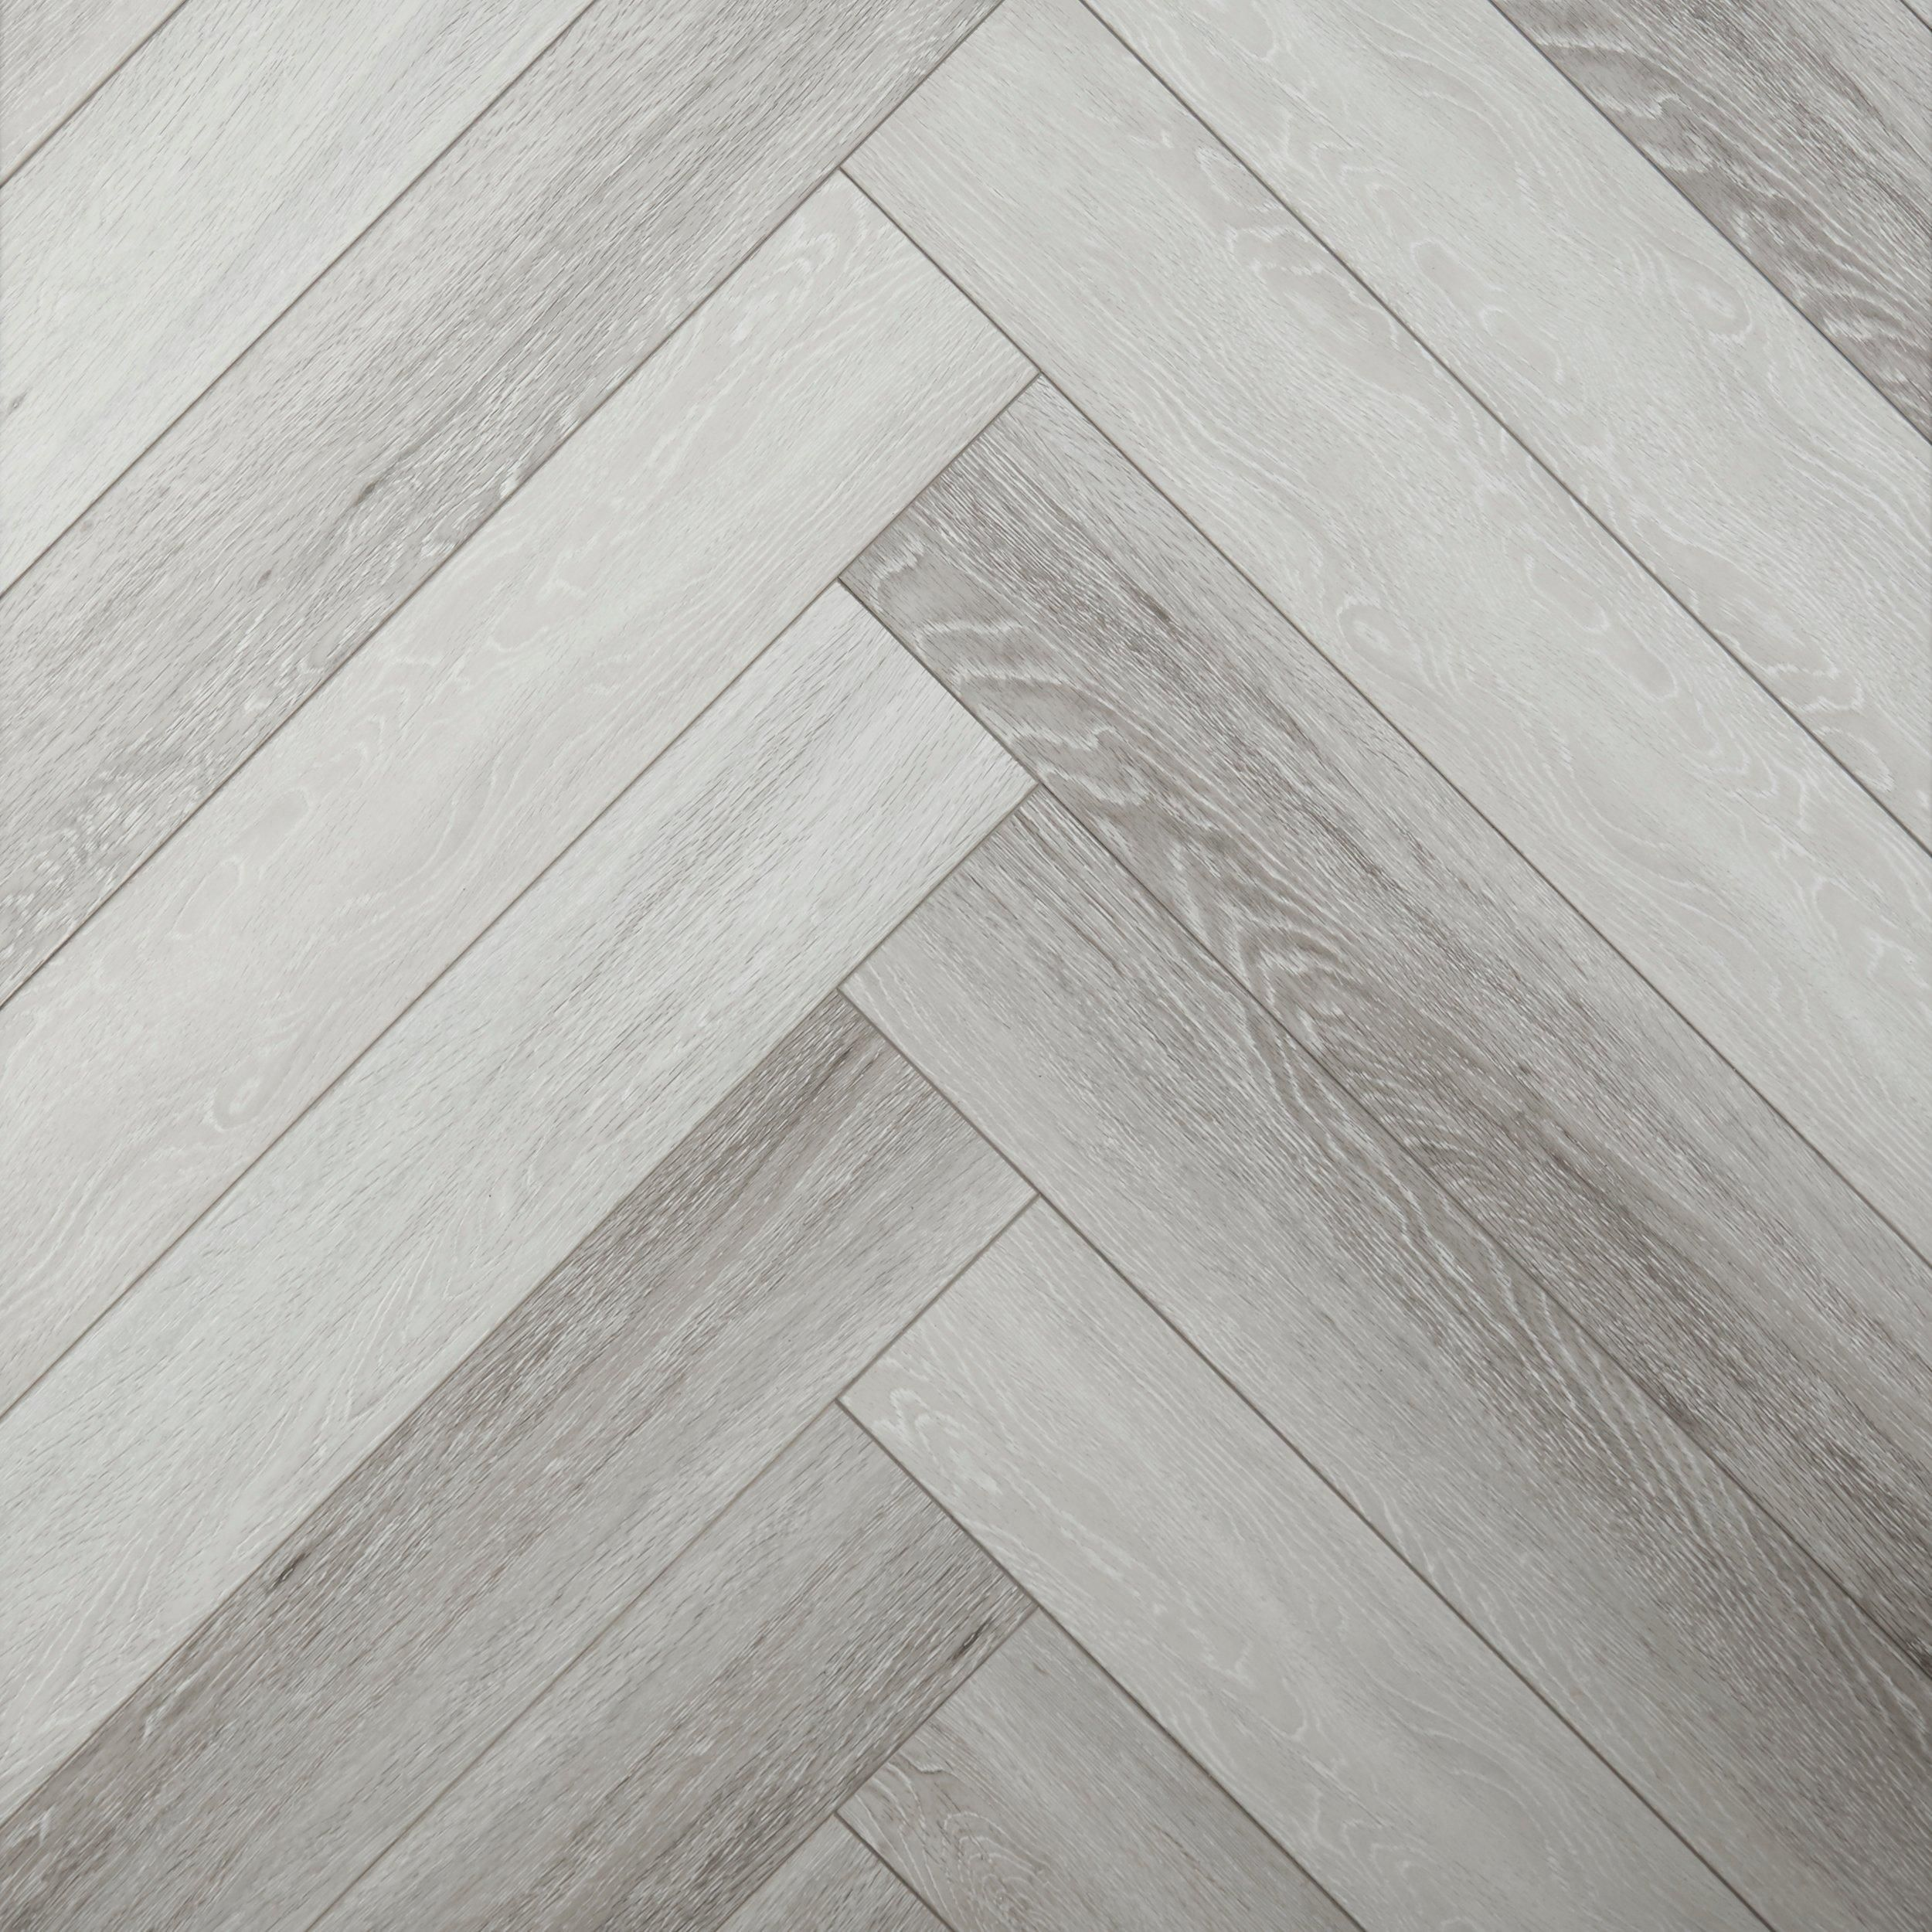 River Rush Herringbone WaterResistant Laminate in 2020